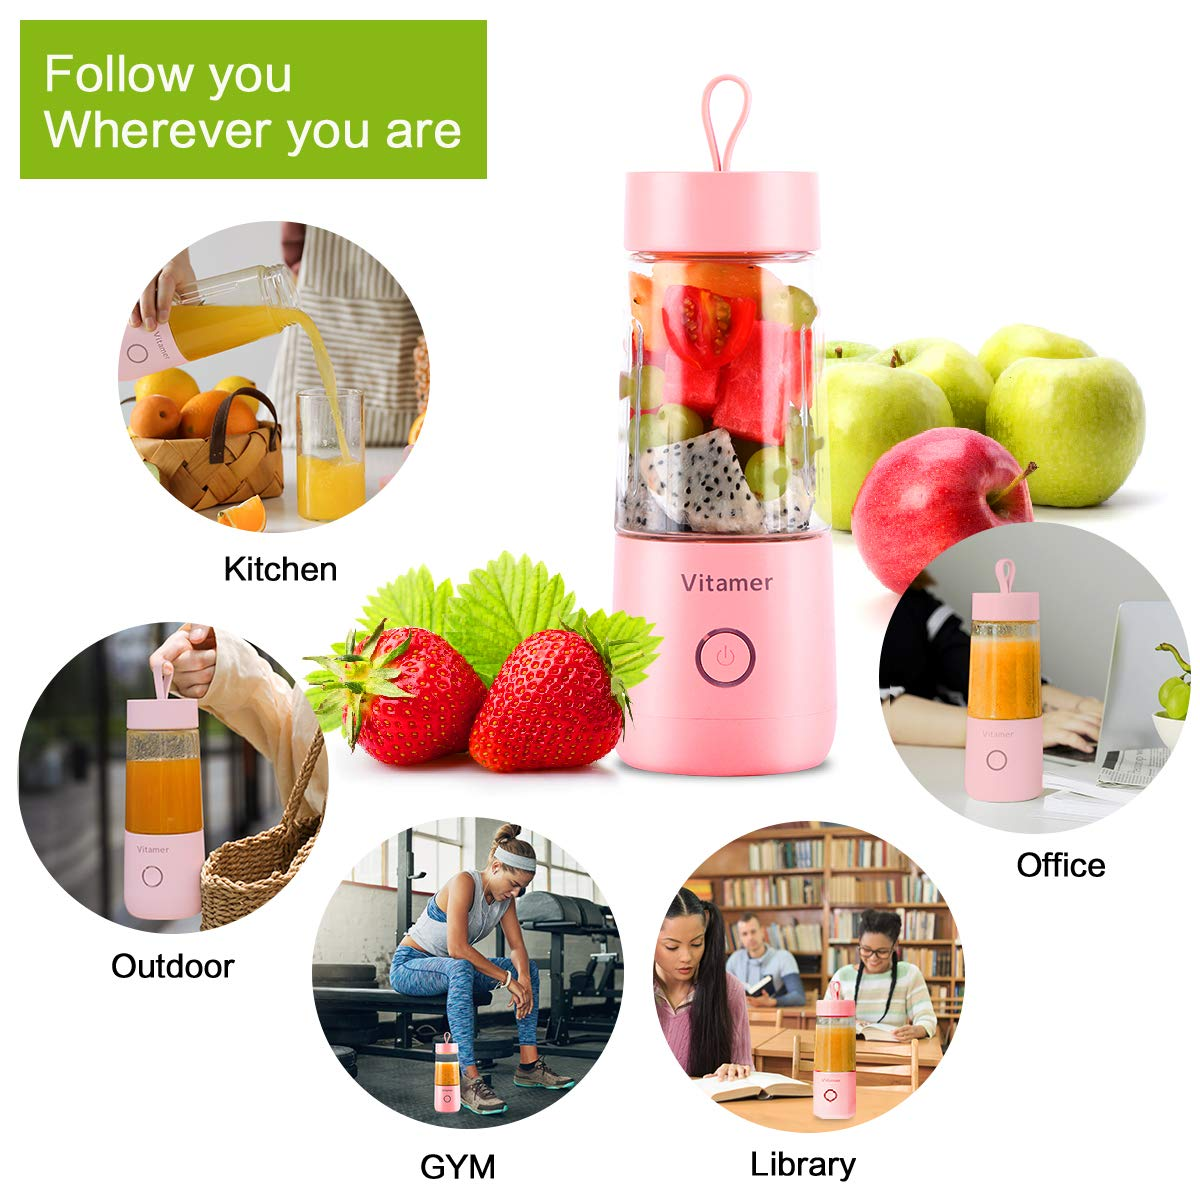 Portable Blender Personal Size Blender,Personal Juicer with USB Rechargeable,Cordless Juicer Personal Blender,Mini Mixer with Cup,Fruit Vegetable Juice Blender,Easy to Clean Fruit Juicer Suitable Travel,Home,Office(Small,BPA Free,USB,350ml,